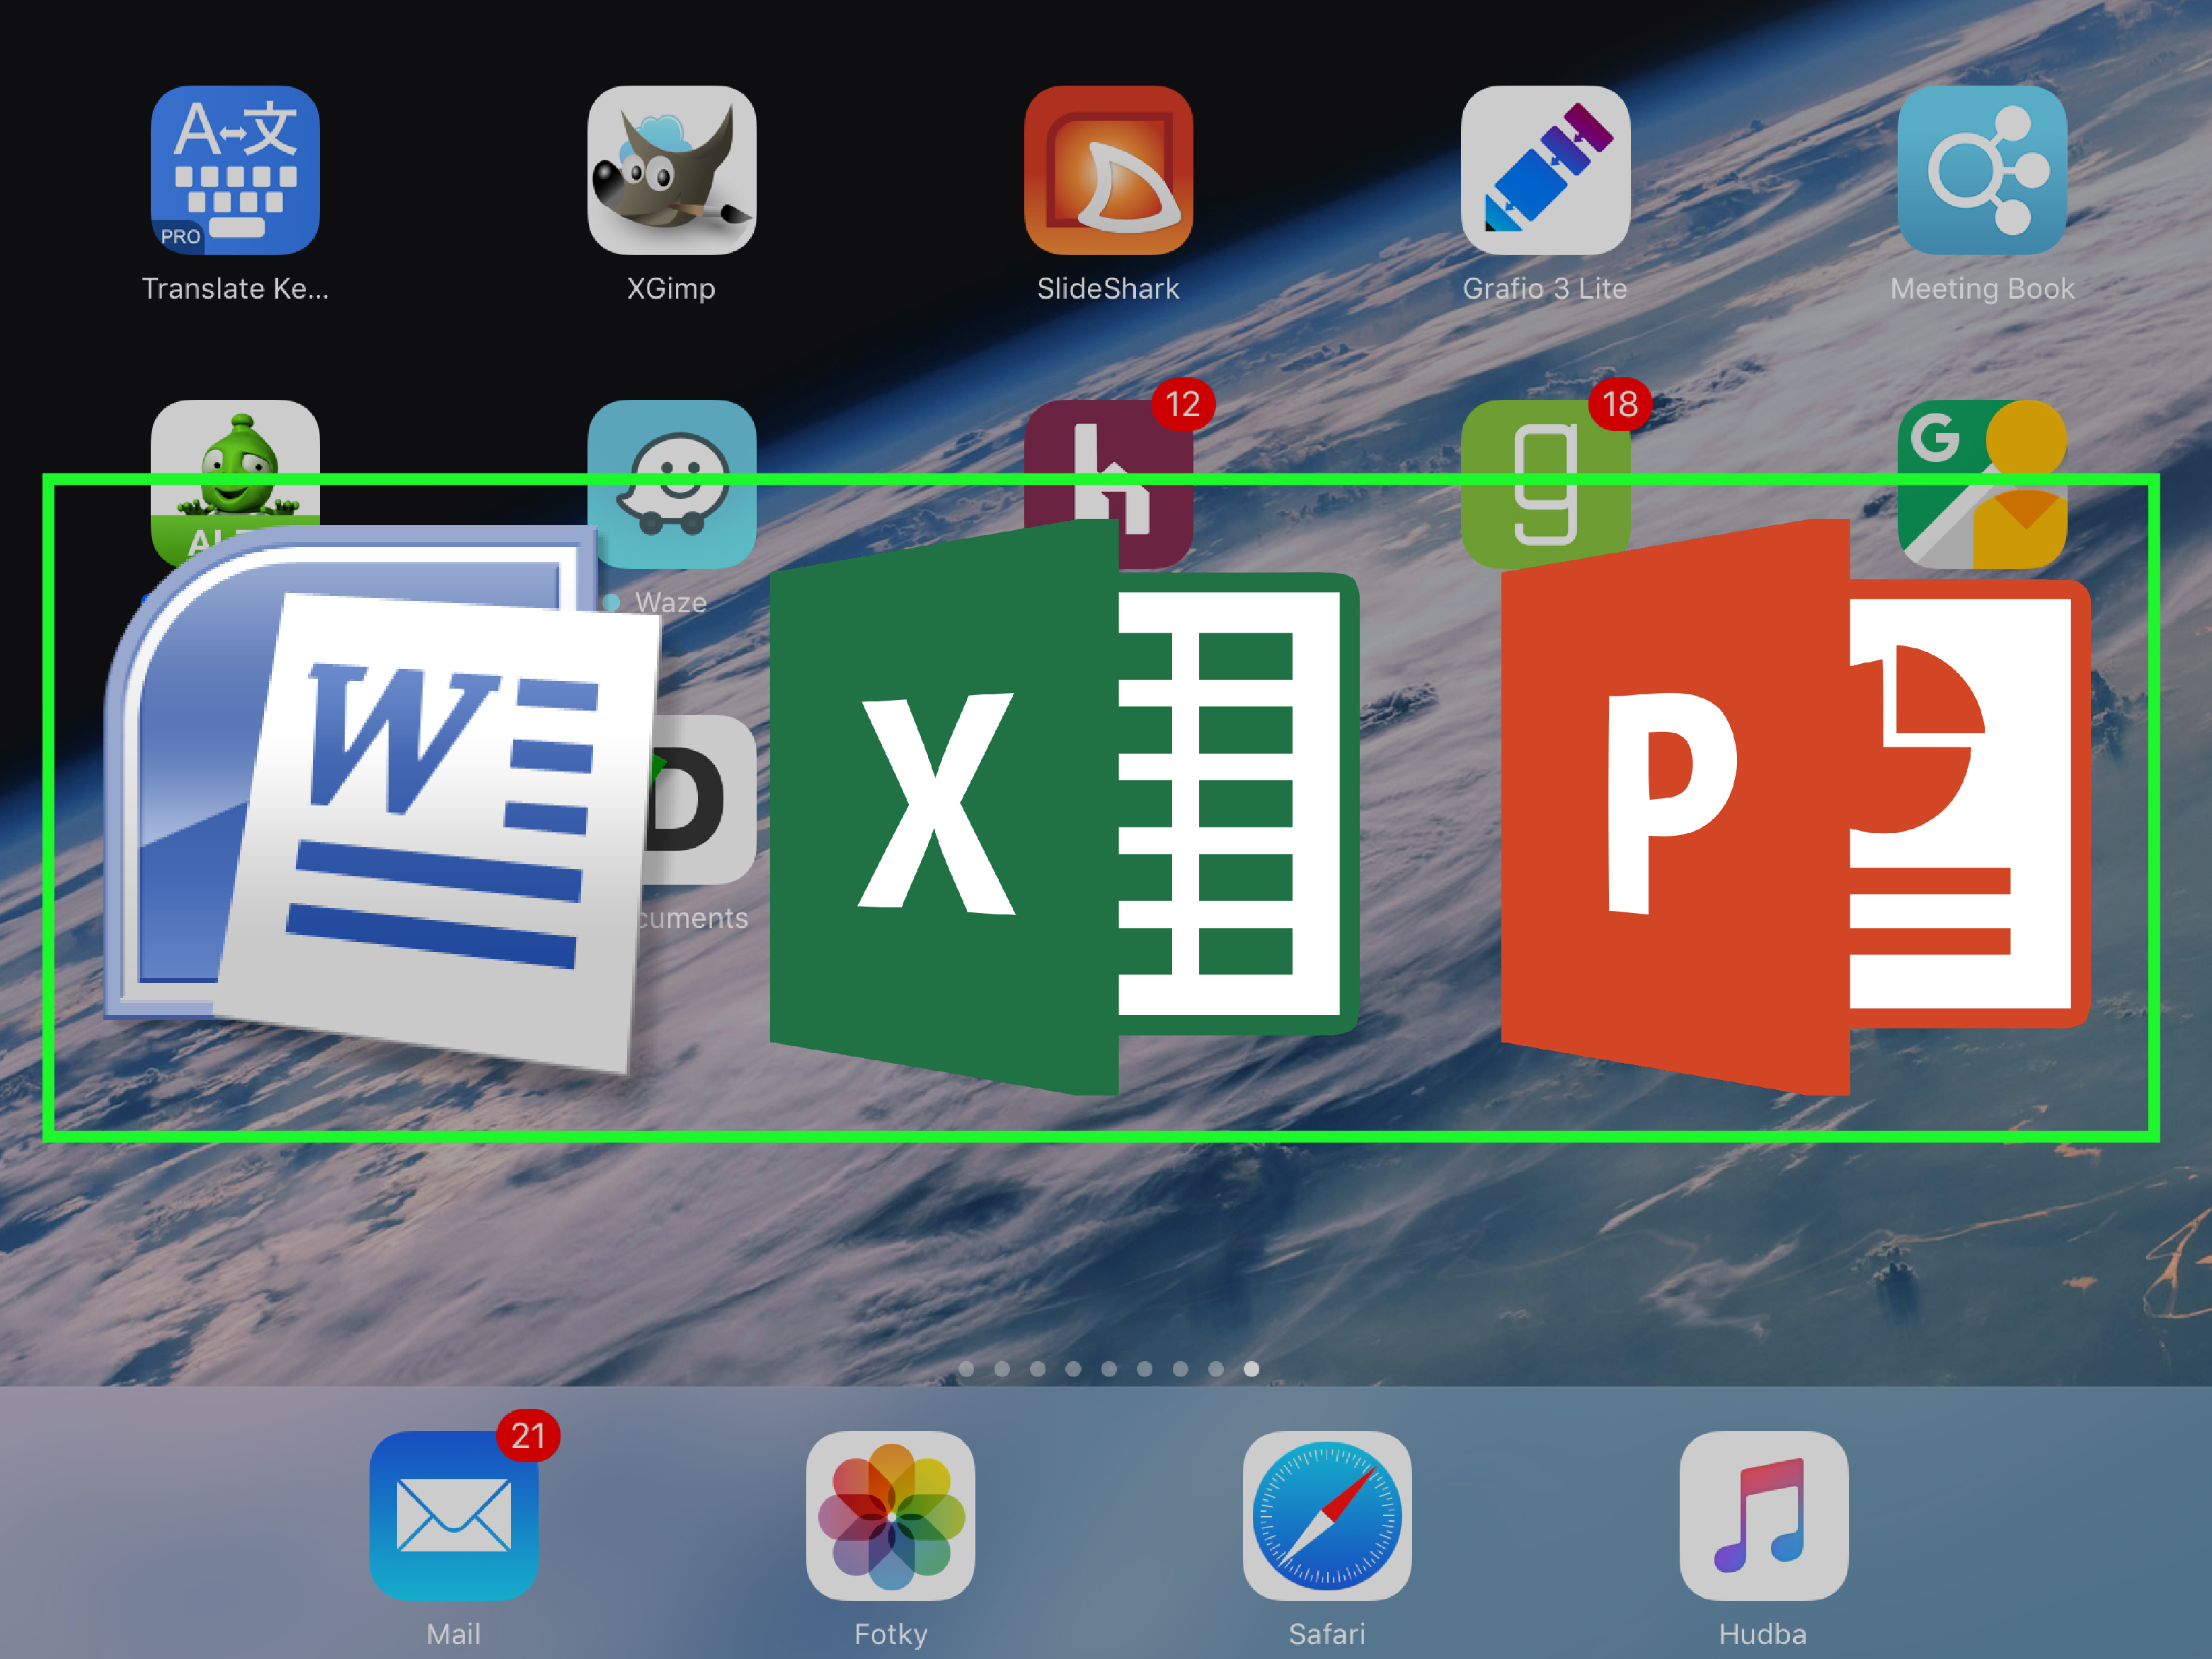 How To Transfer Office Documents Like Word And Excel To Ipad In Best Tablet For Excel Spreadsheets